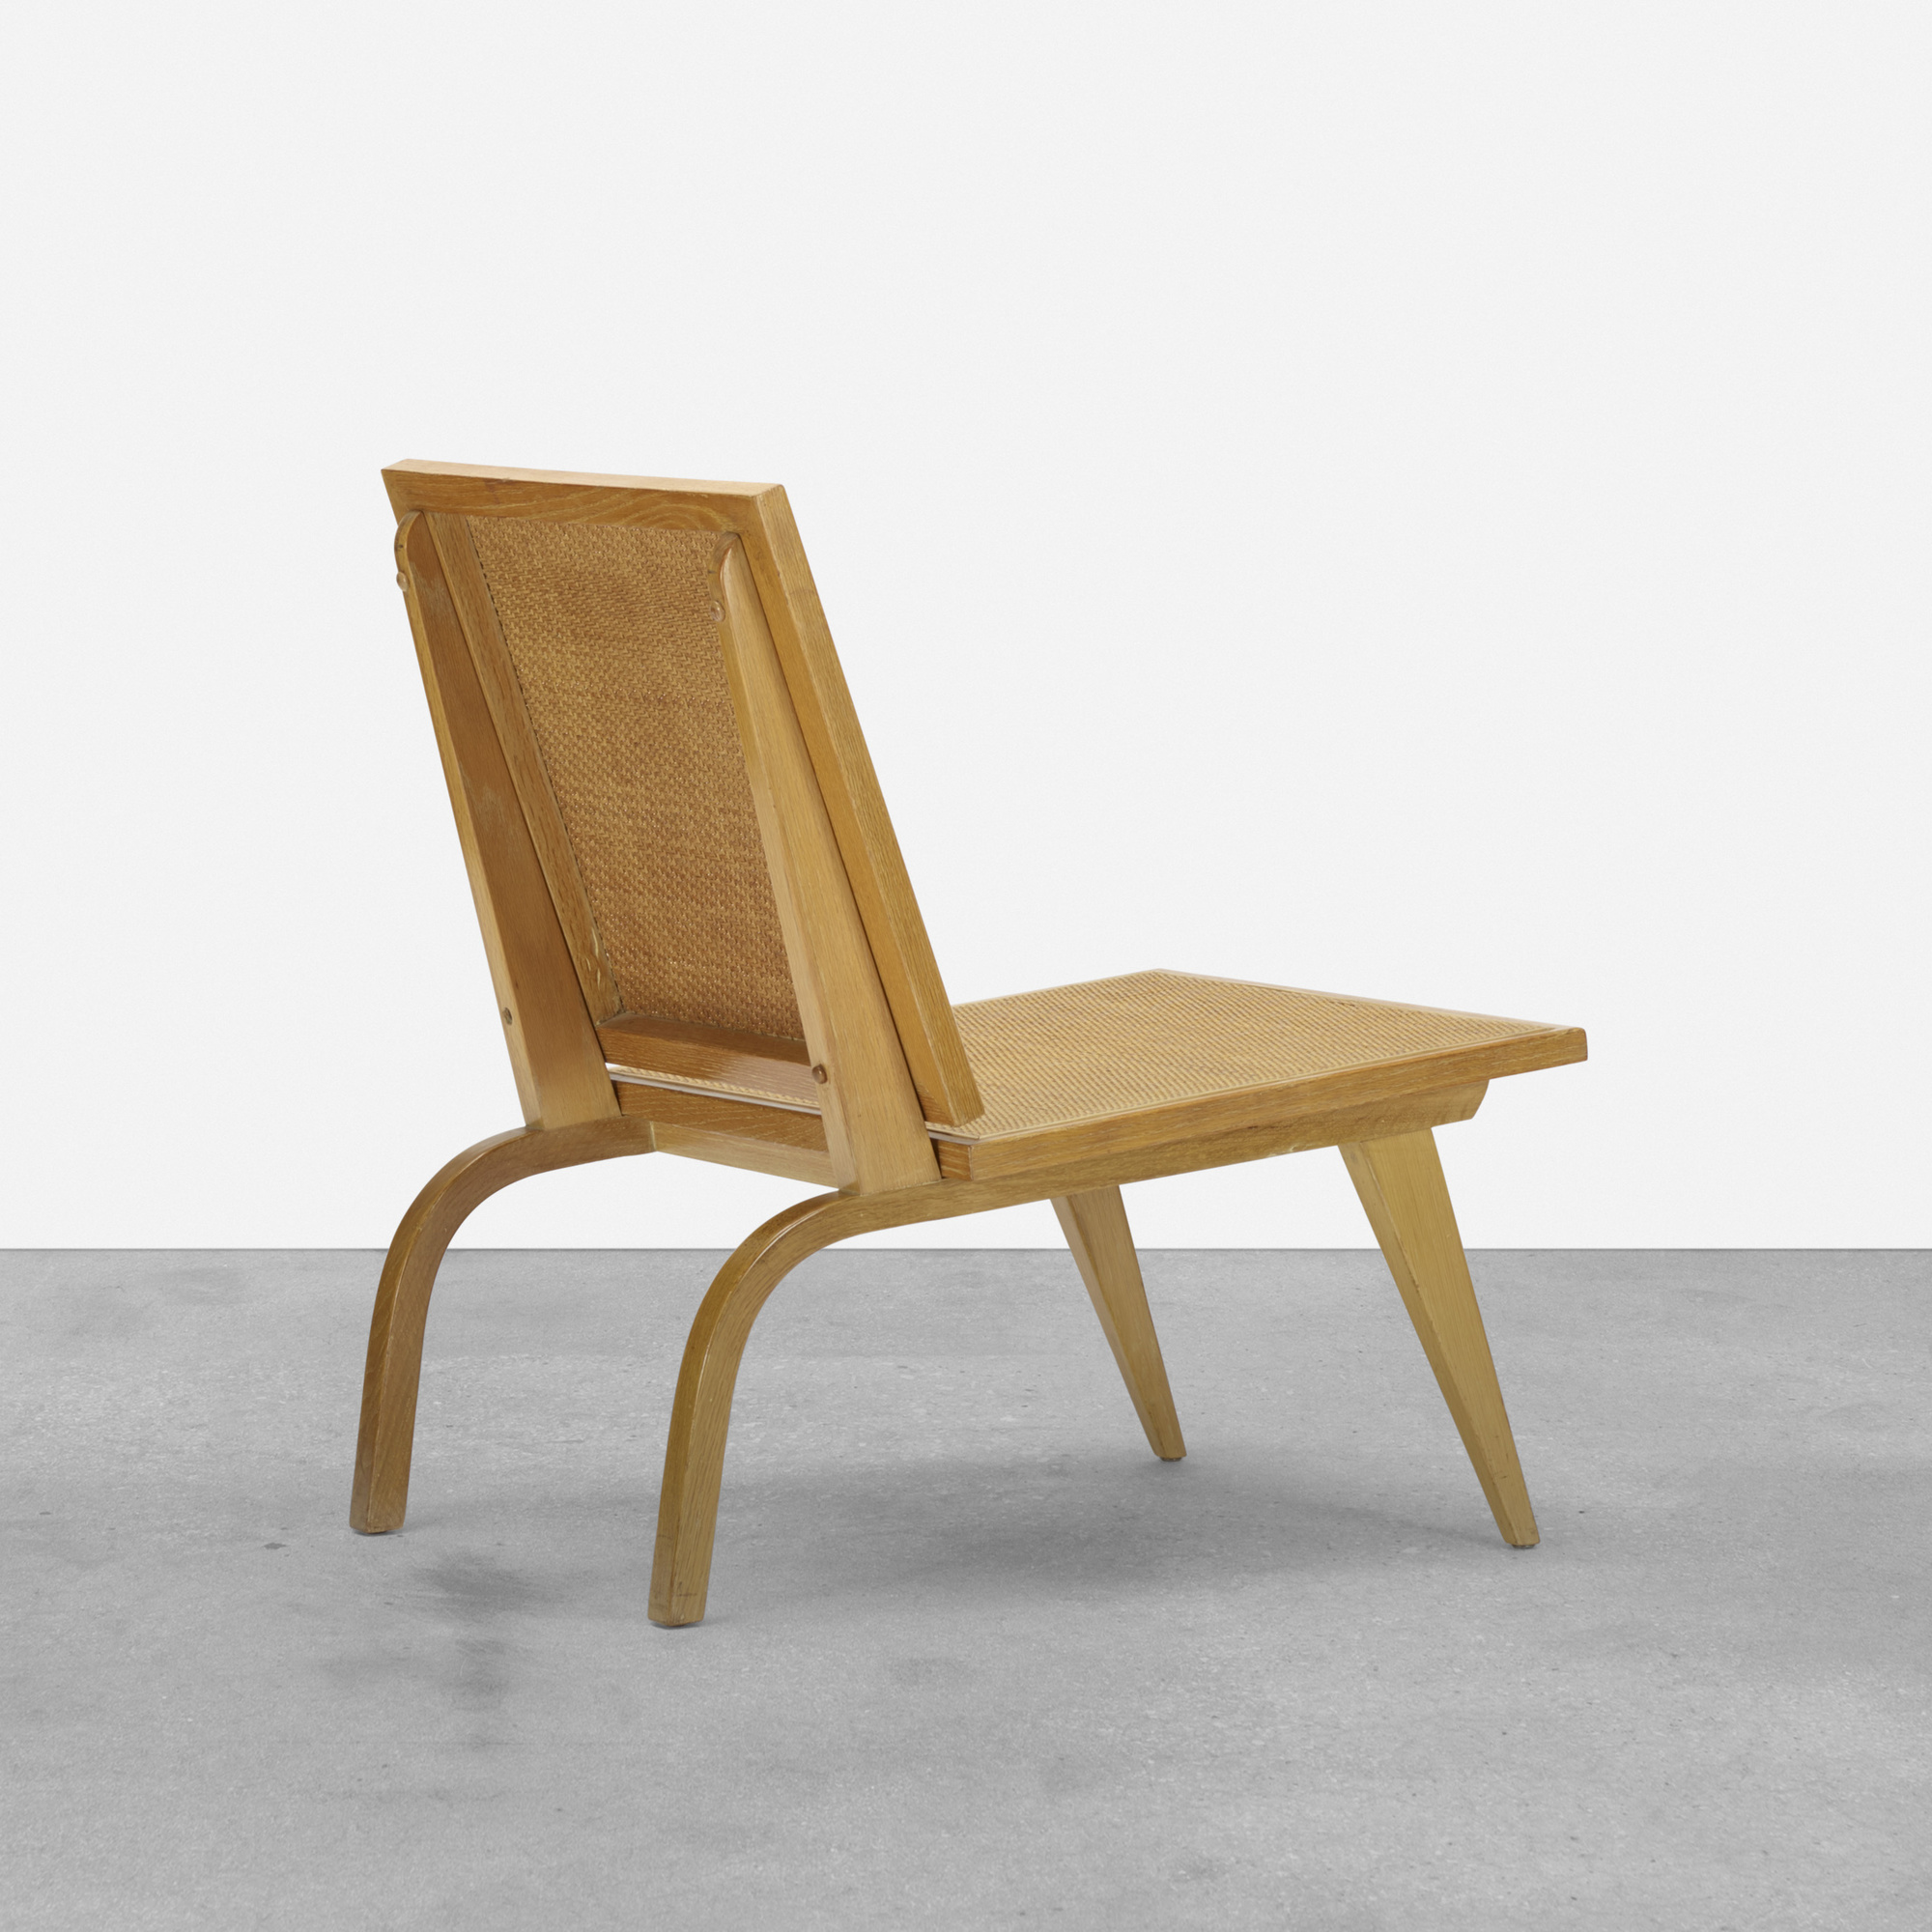 350: Edward Durell Stone / lounge chair (1 of 4)